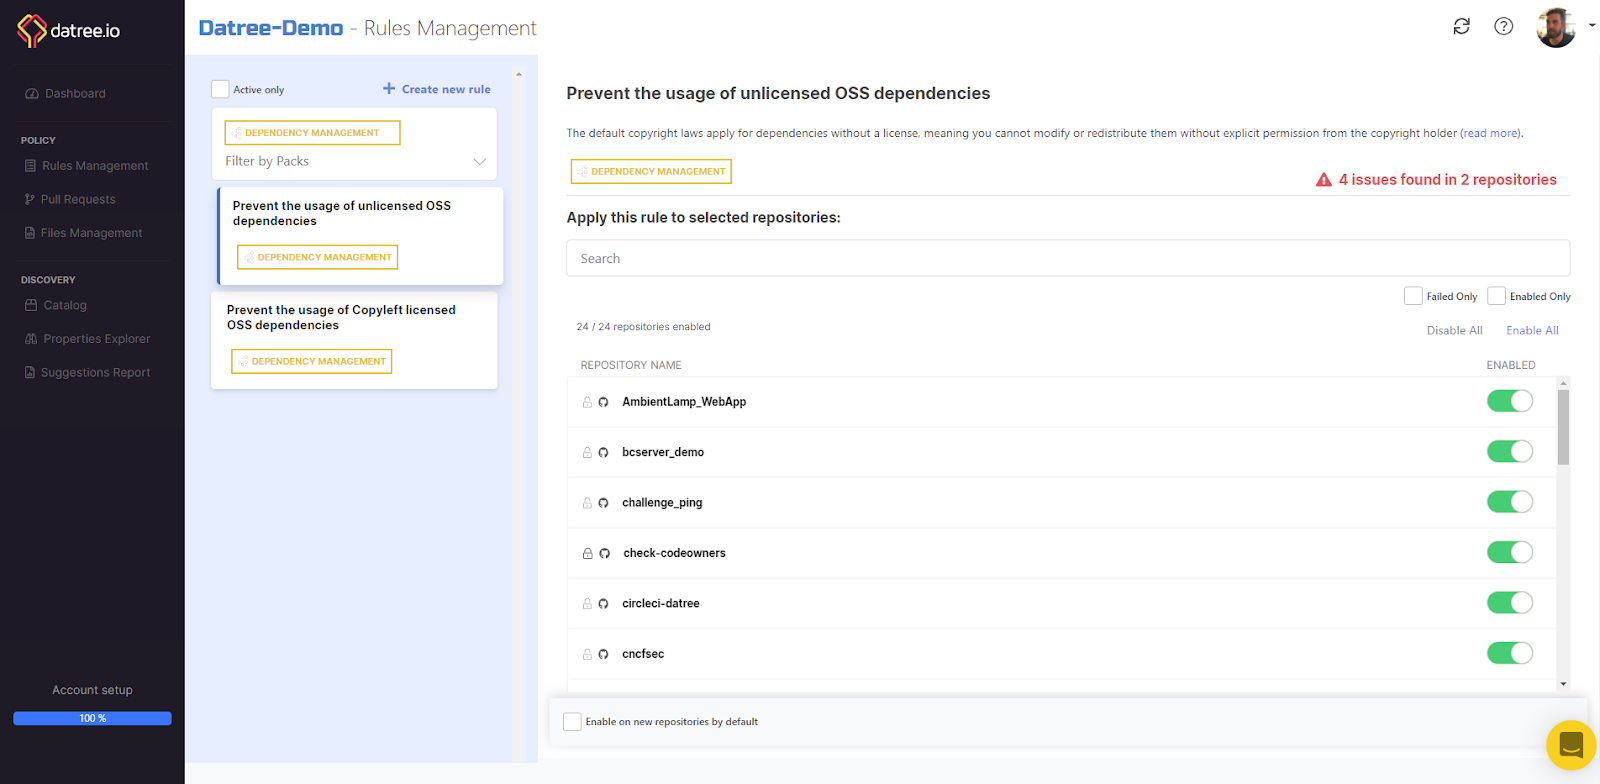 Datree-Demo Rules Management